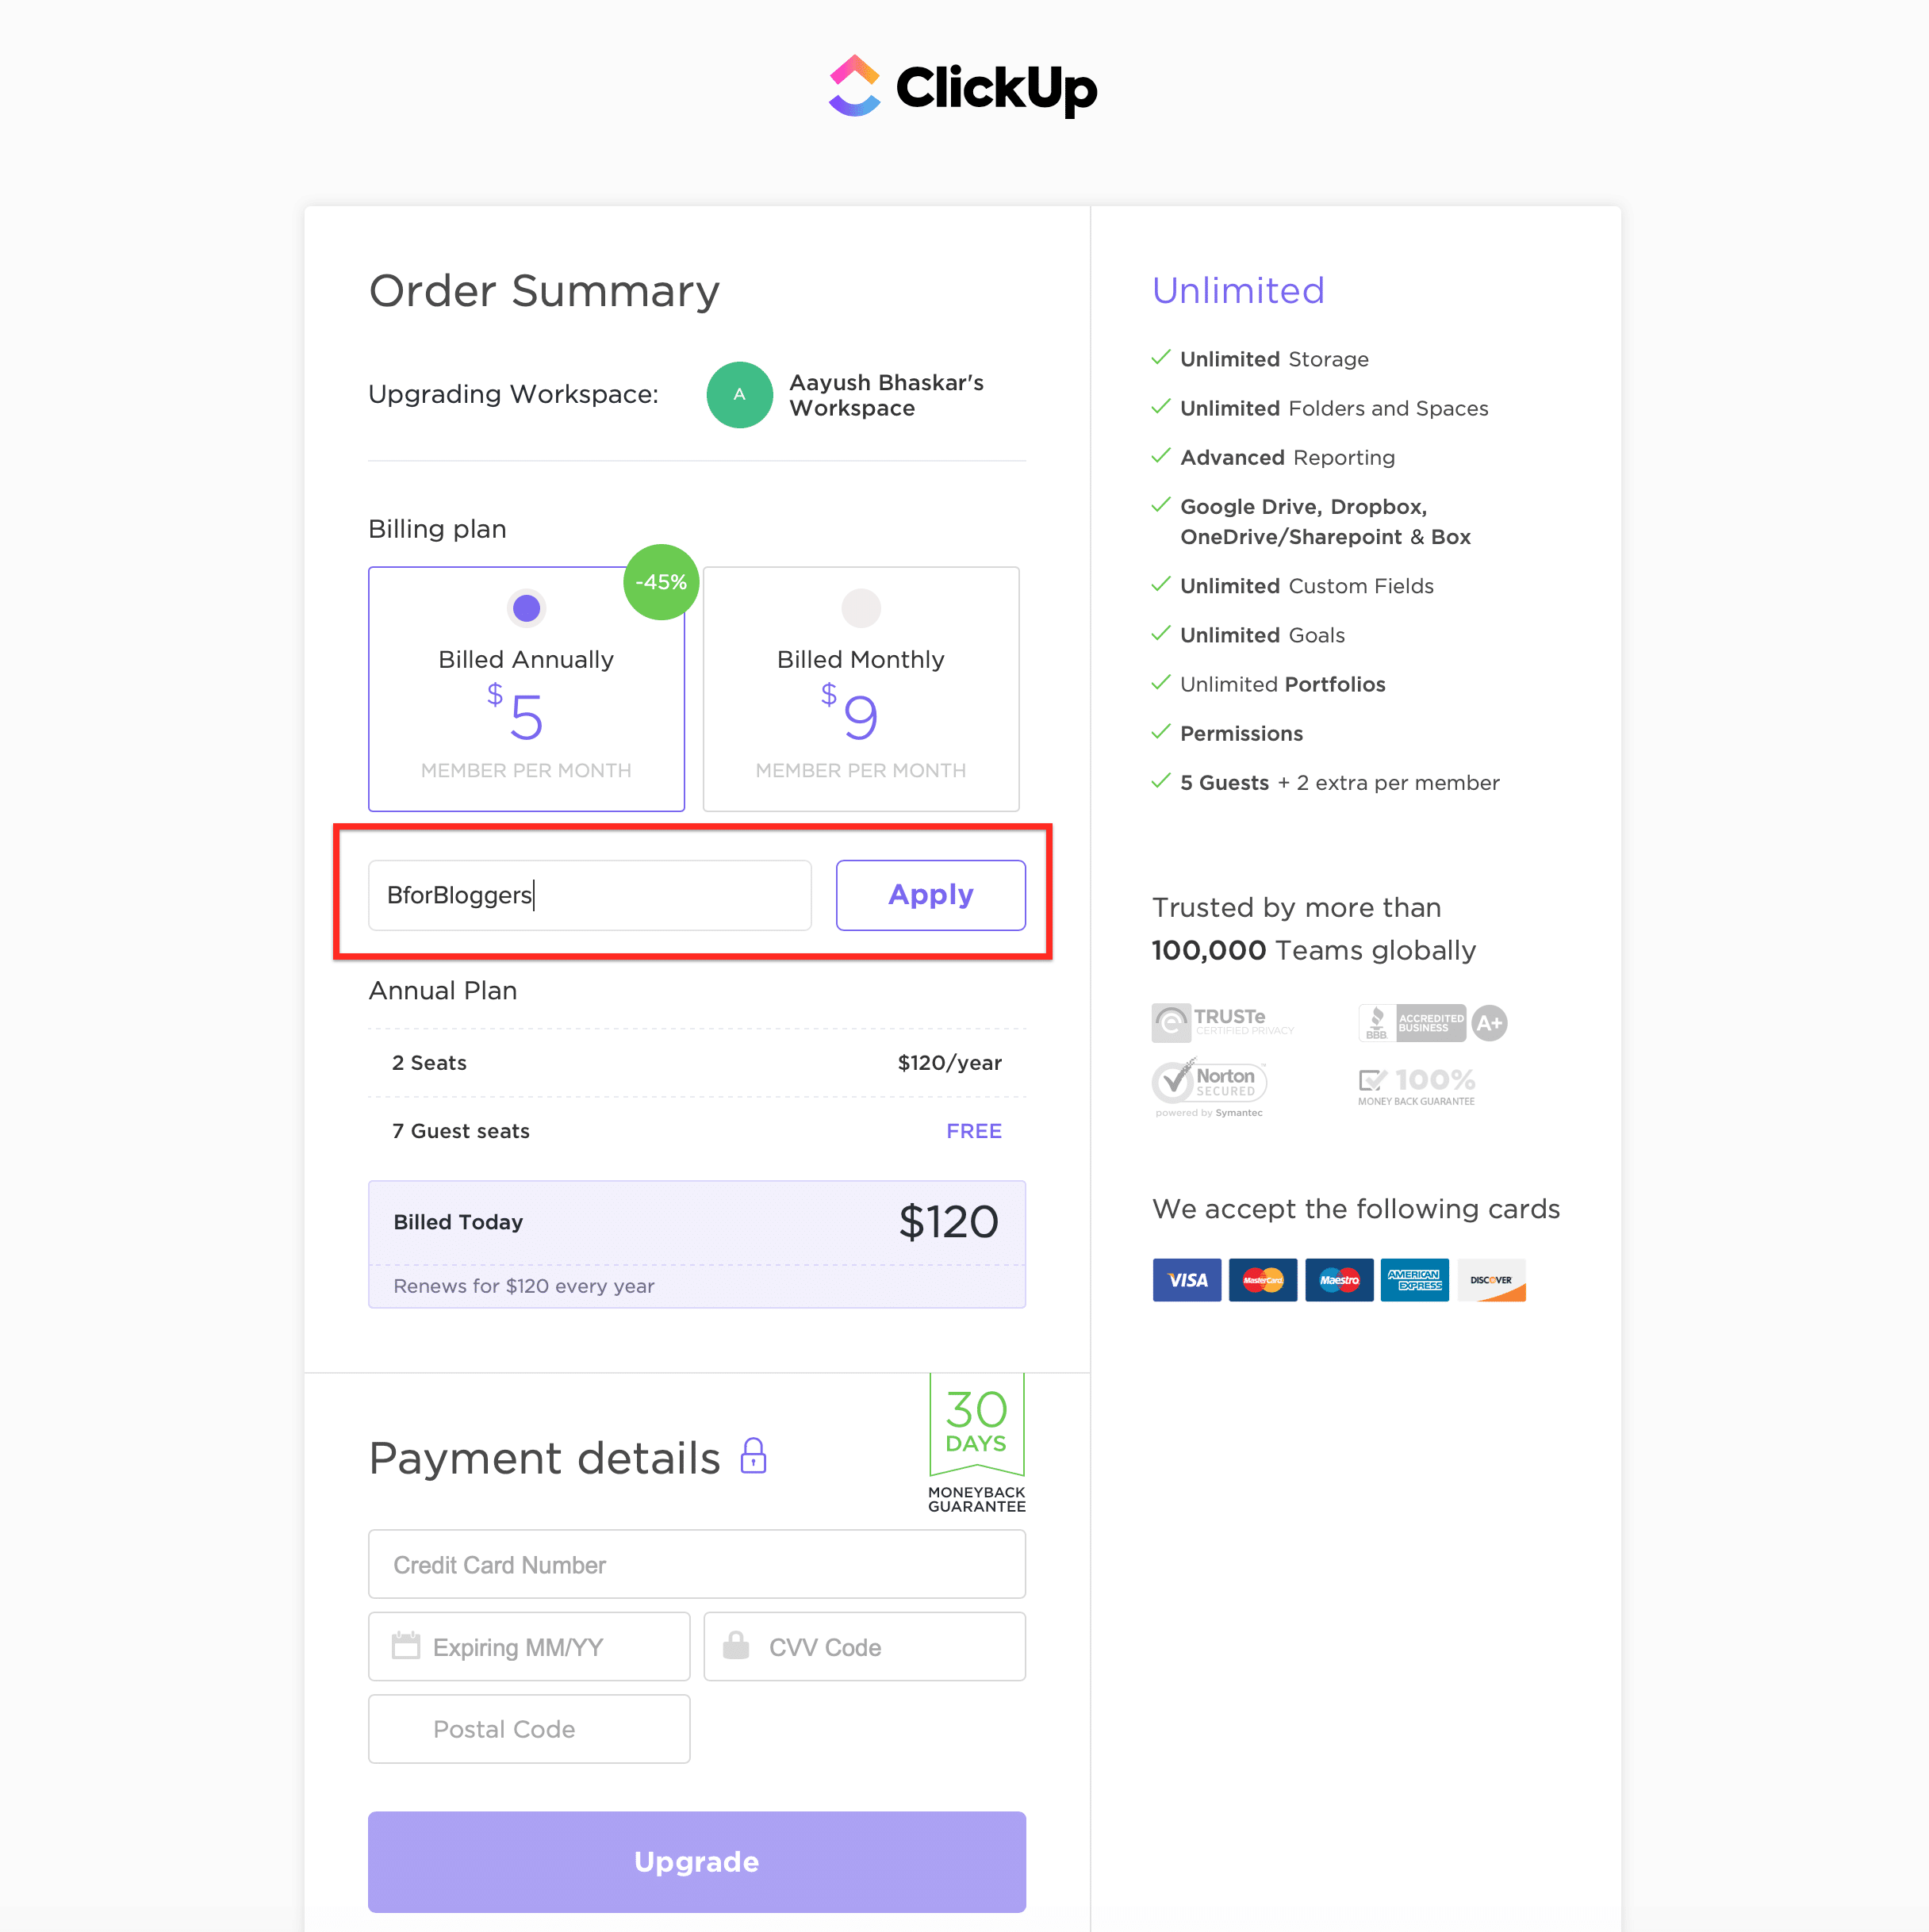 clickup-checkout-page-discount-applied